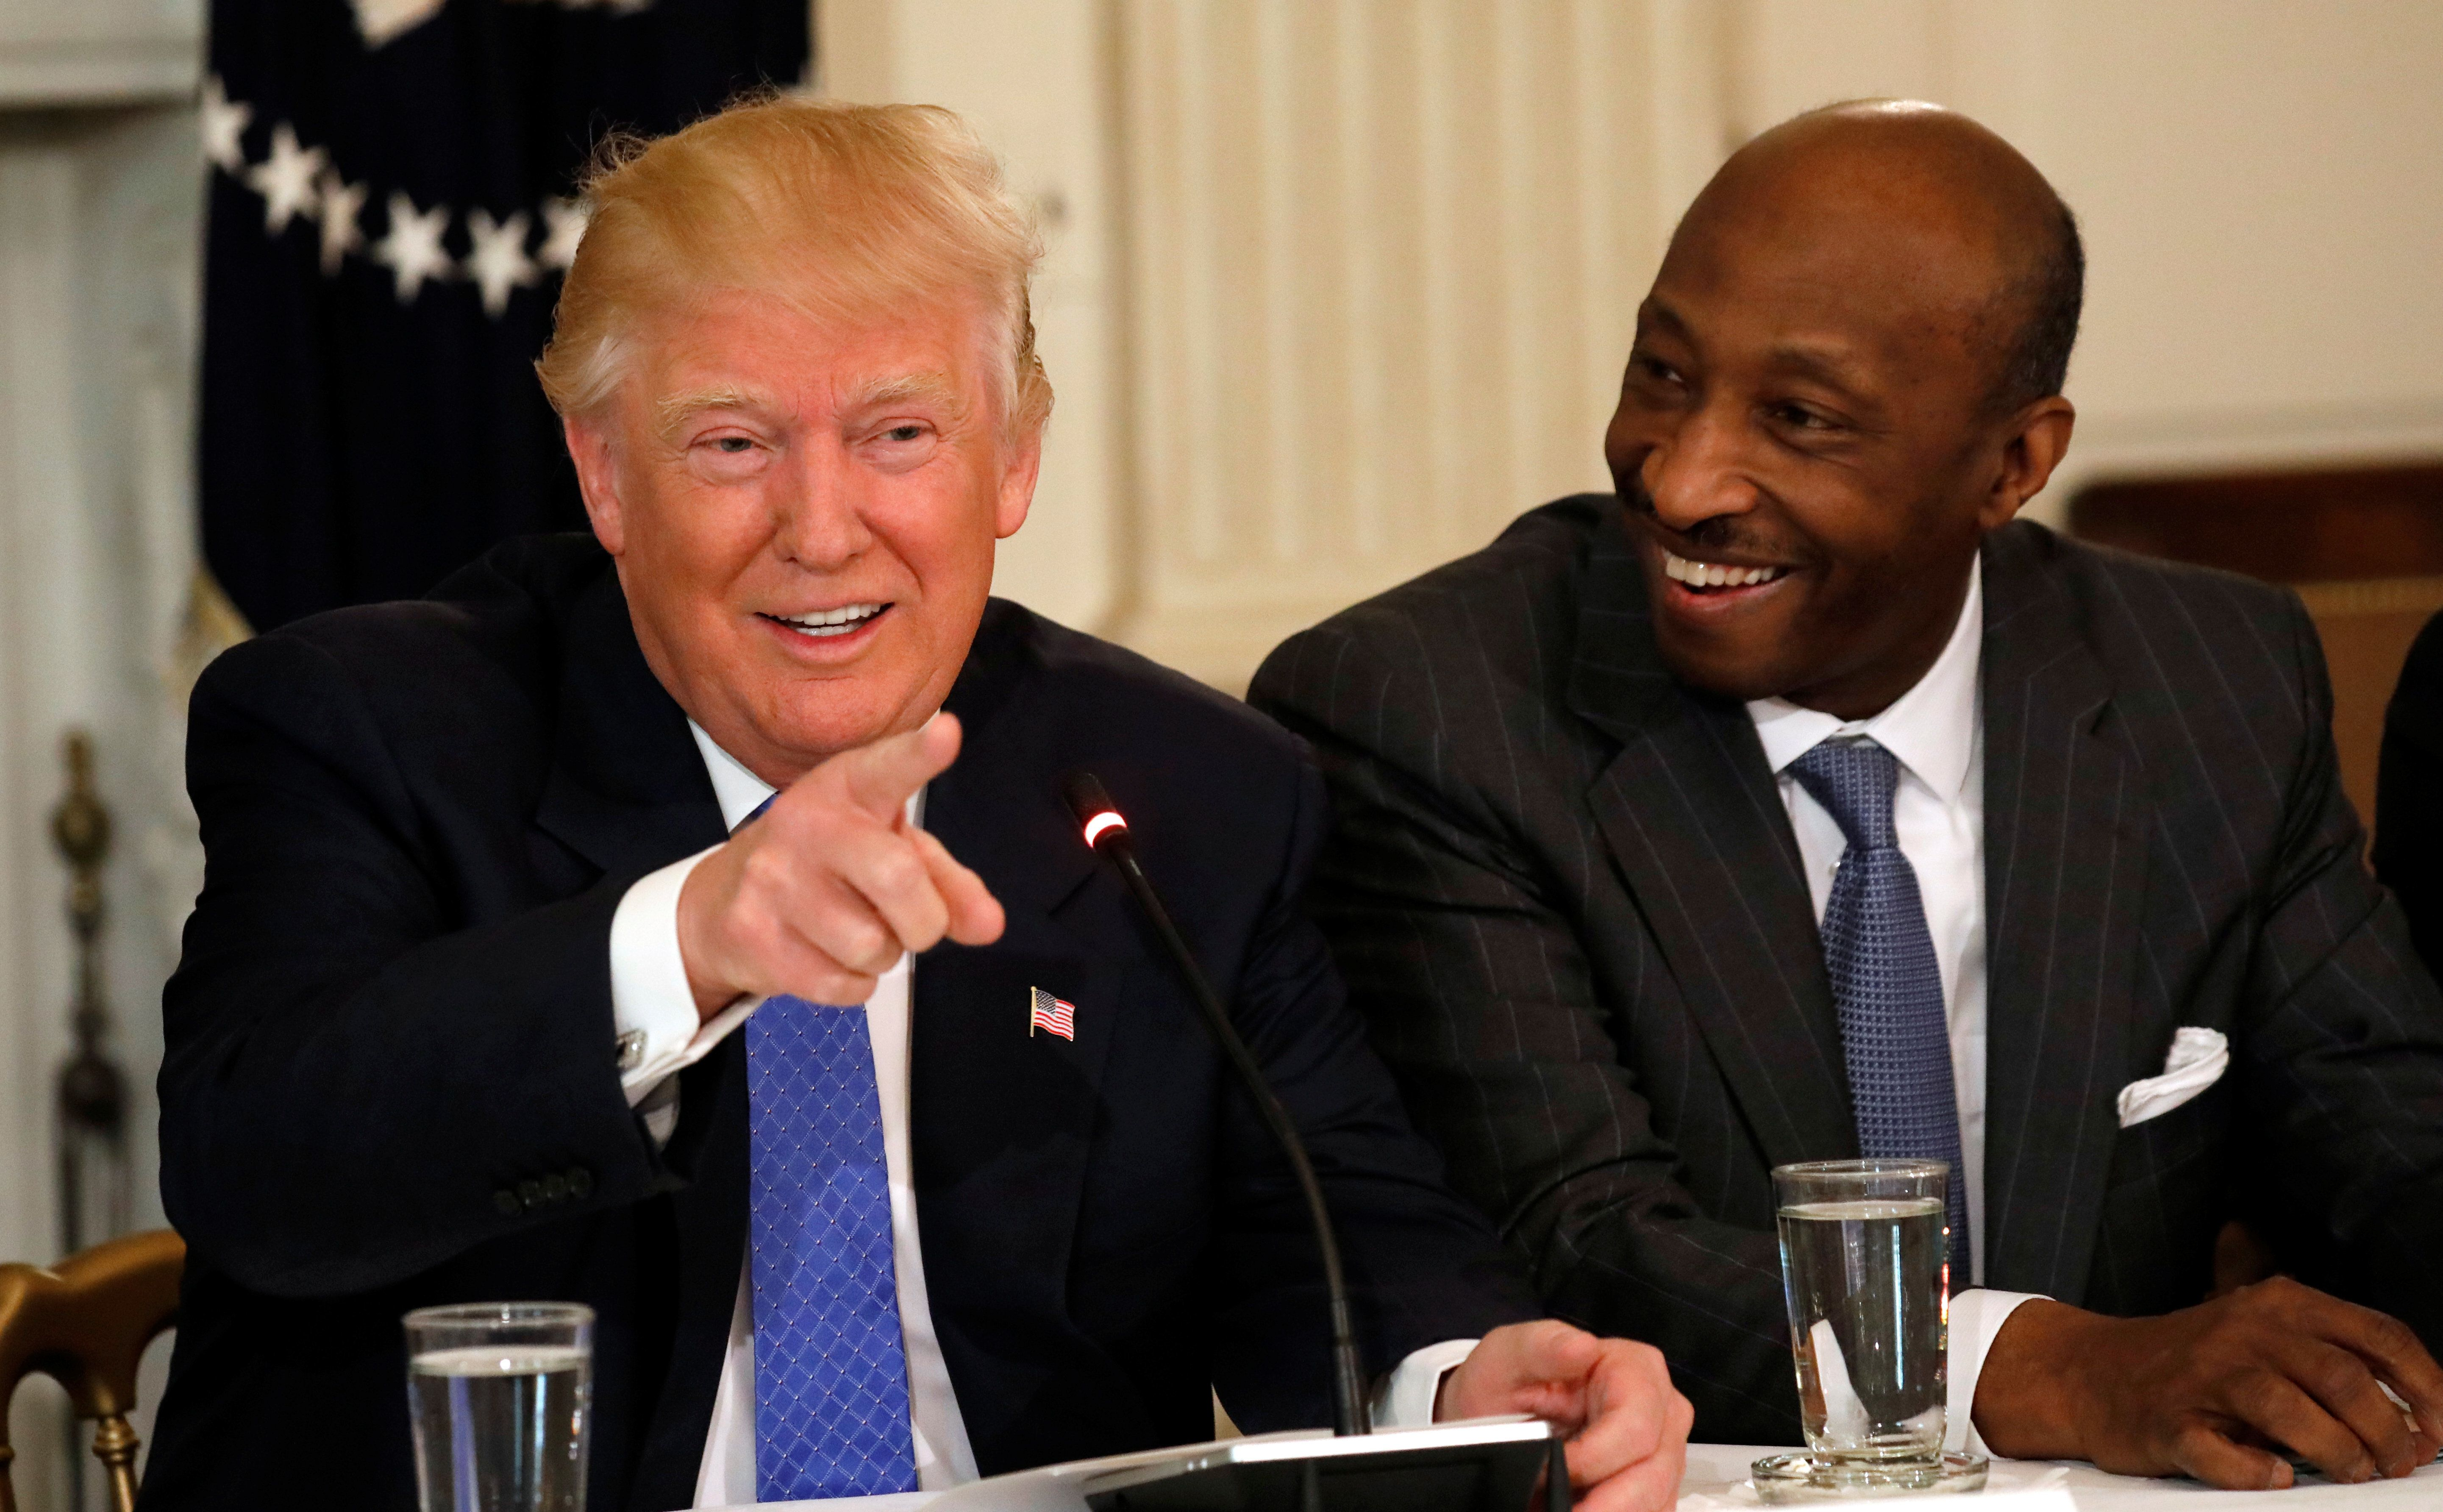 President Donald and Merck & Co. CEO Ken Frazier at a White House meeting in February.